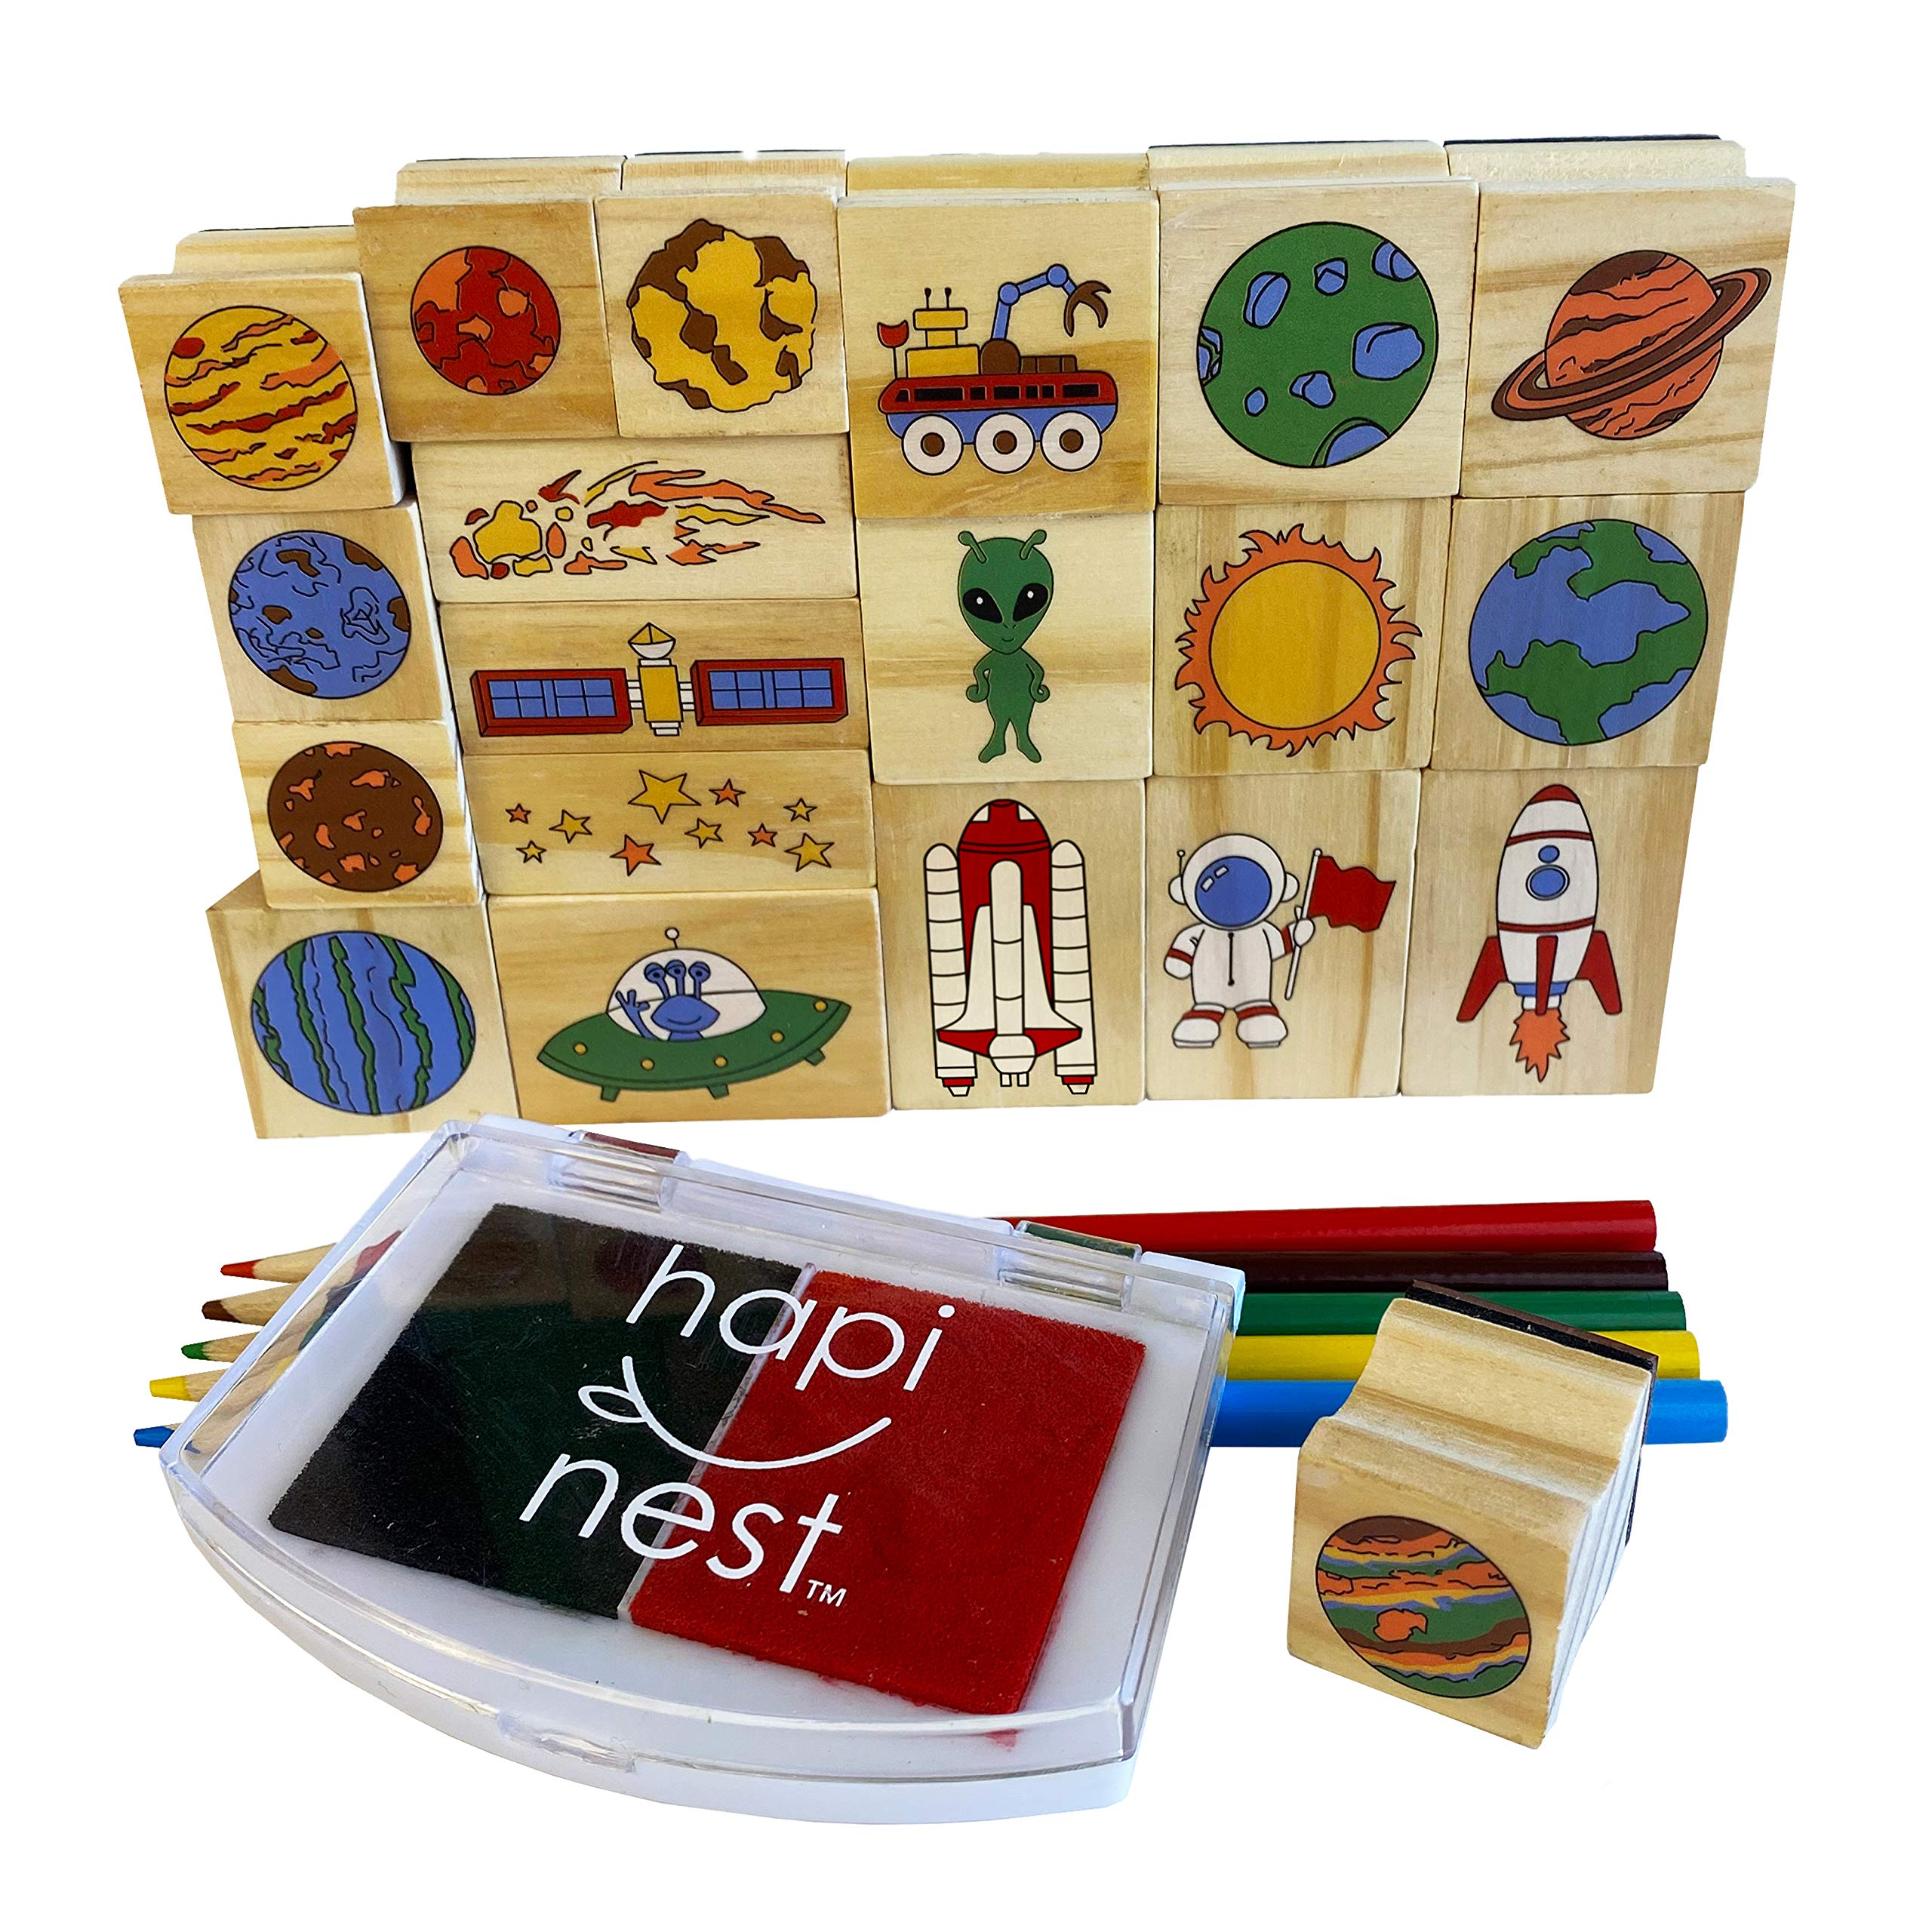 Hapinest Woodland Animal Wooden Stamp and Sticker Set for Kids Boys and Girls 68 Pieces Arts and Crafts Gifts Age 4 5 6 7 8 9 10 Years Old